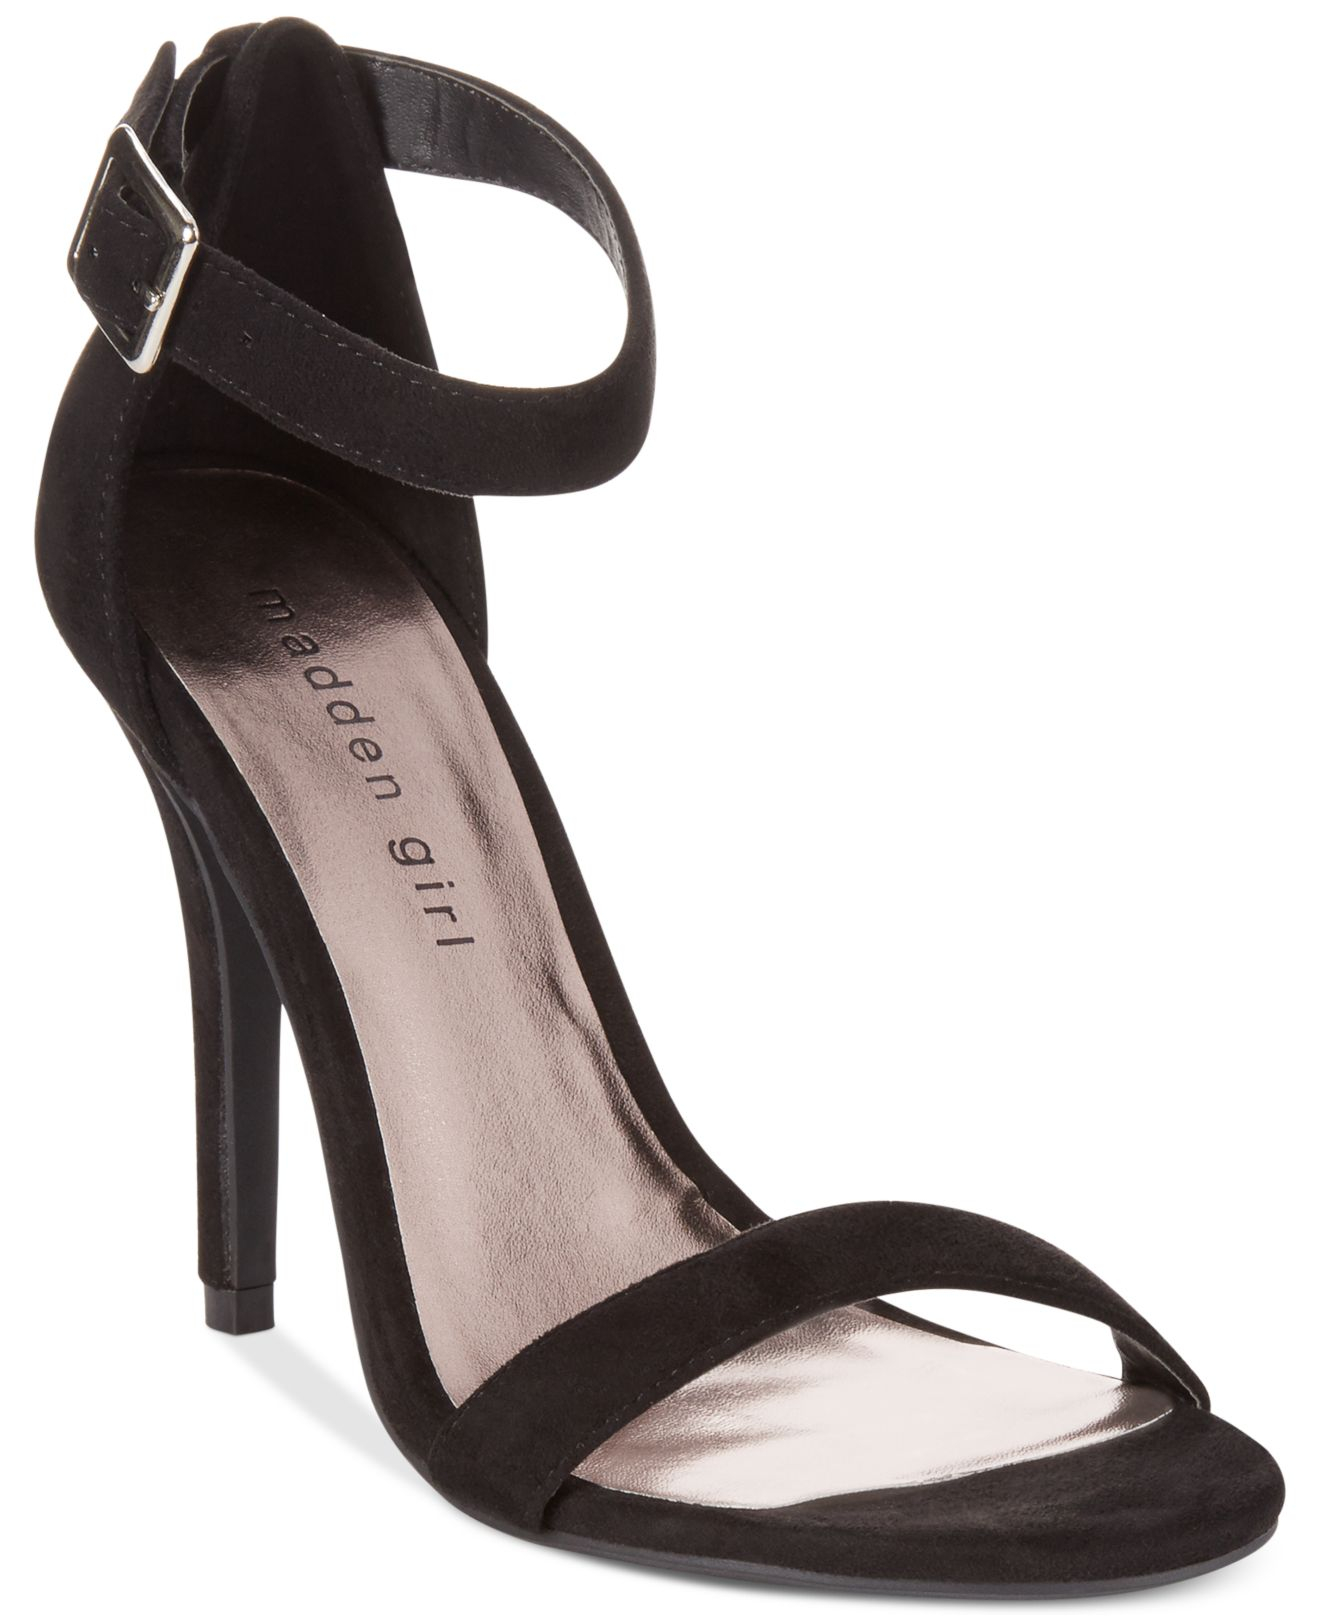 Madden girl Dafney Two Piece Dress Sandals in Black - Lyst